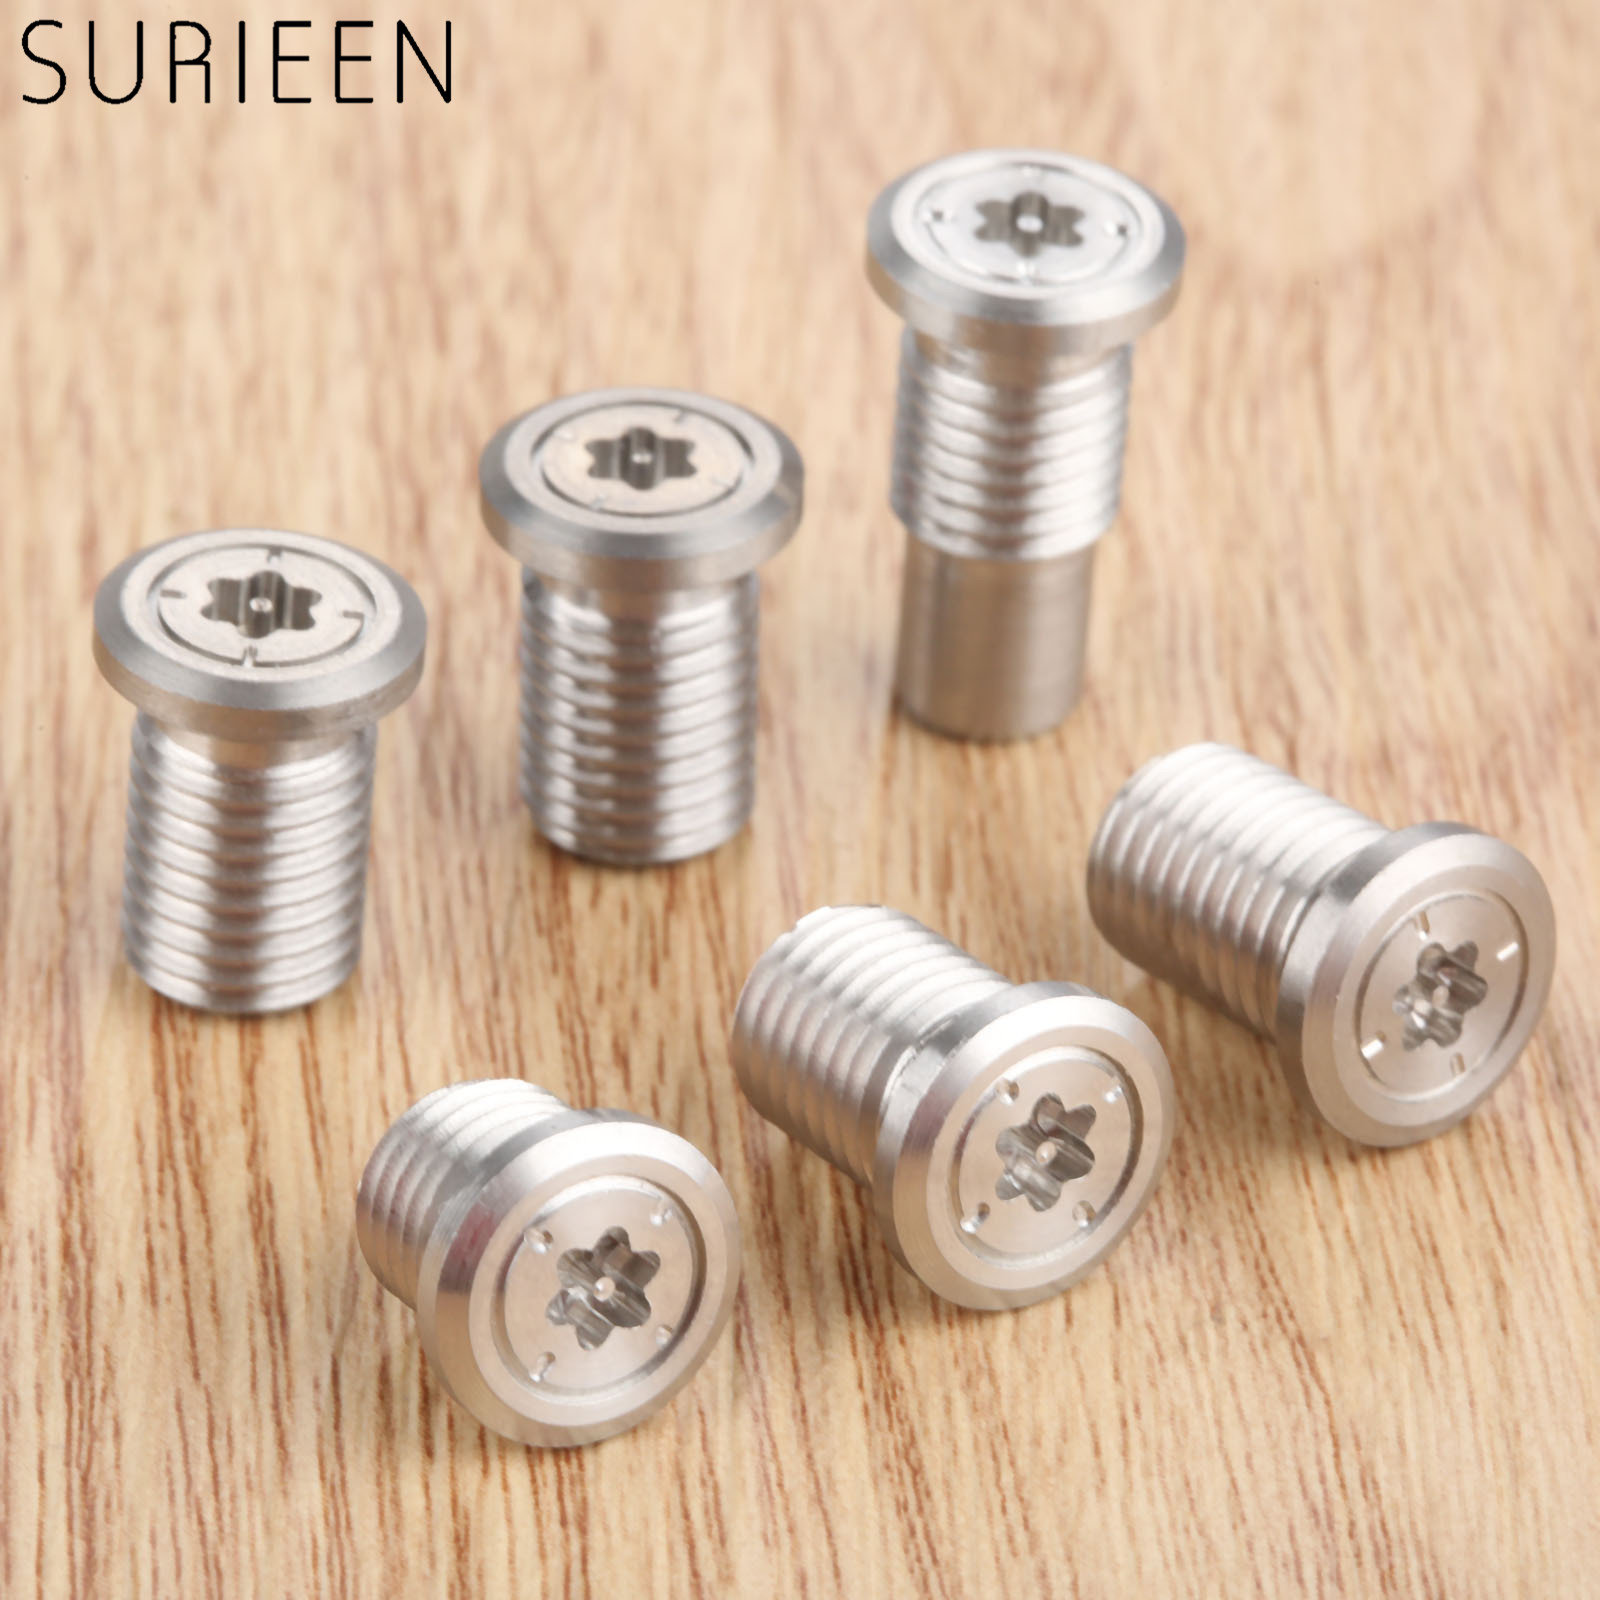 SURIEEN 1 Pc Steel Golf Weight Screw For Taylormade M4 Driver Head Professional Golf Club Heads Accessories 2g/4g/6g/7g/9g/10g